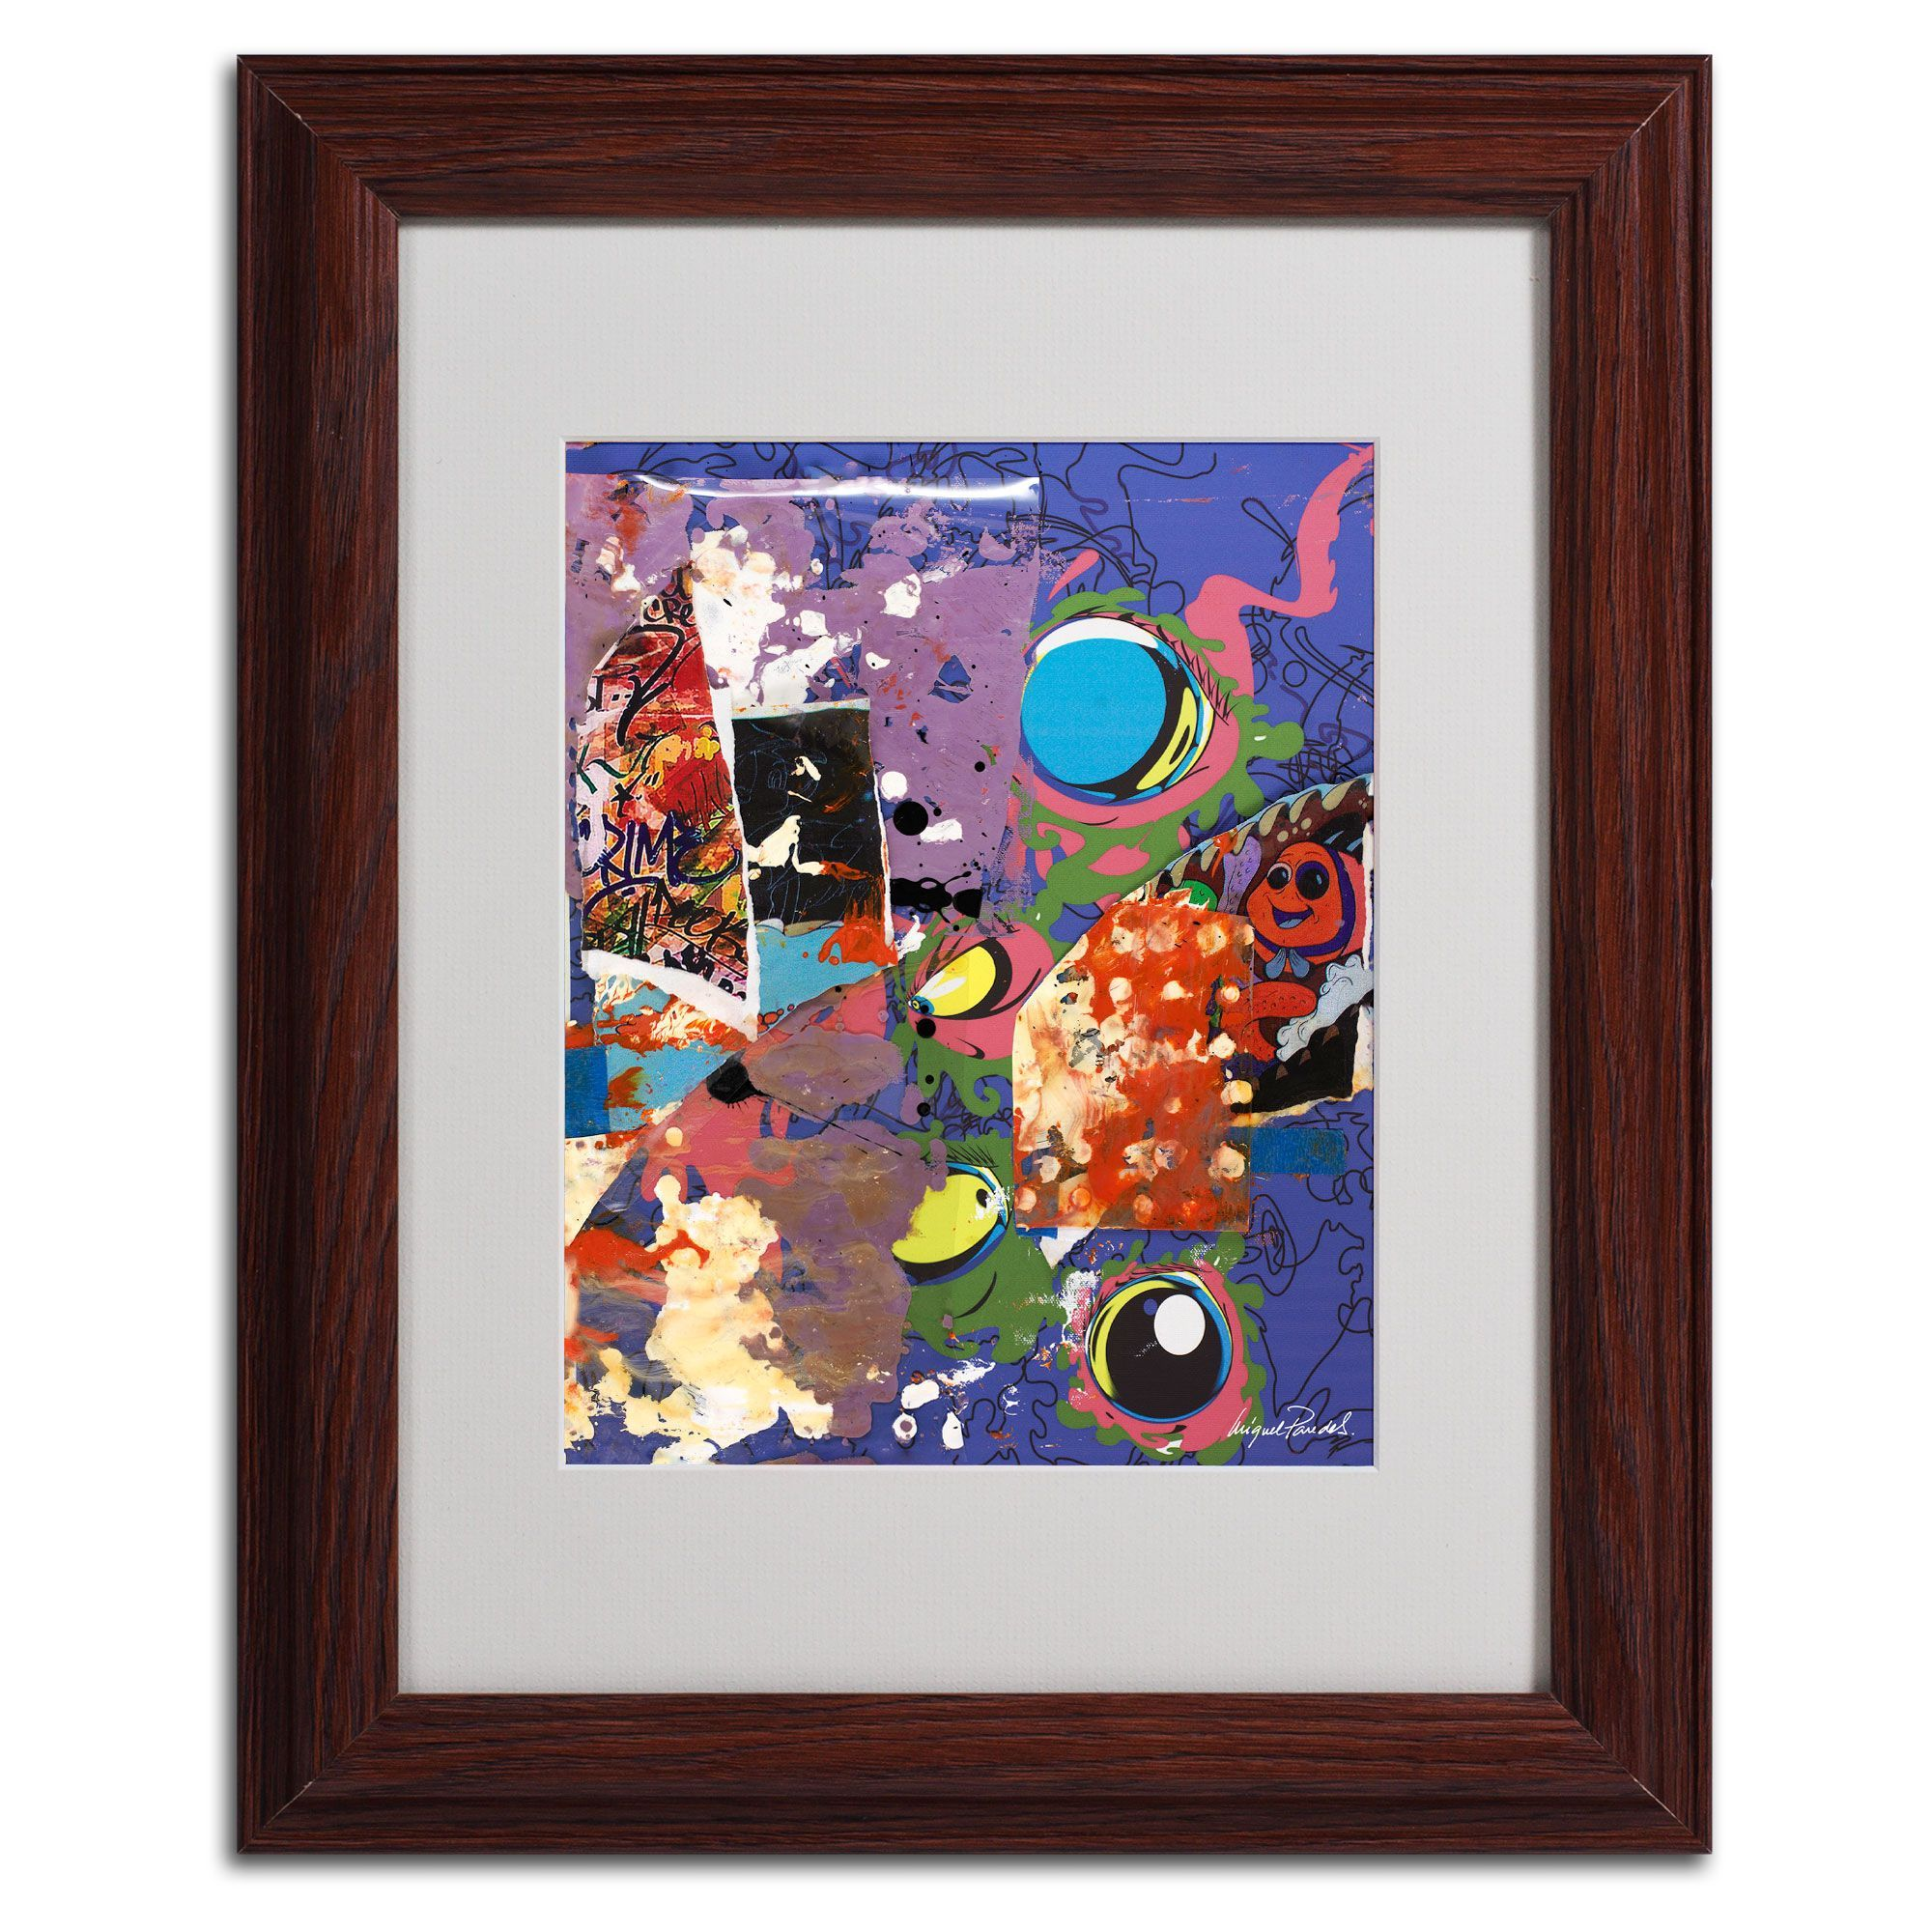 Miguel Paredes 'Urban Collage II' Framed Matted Art